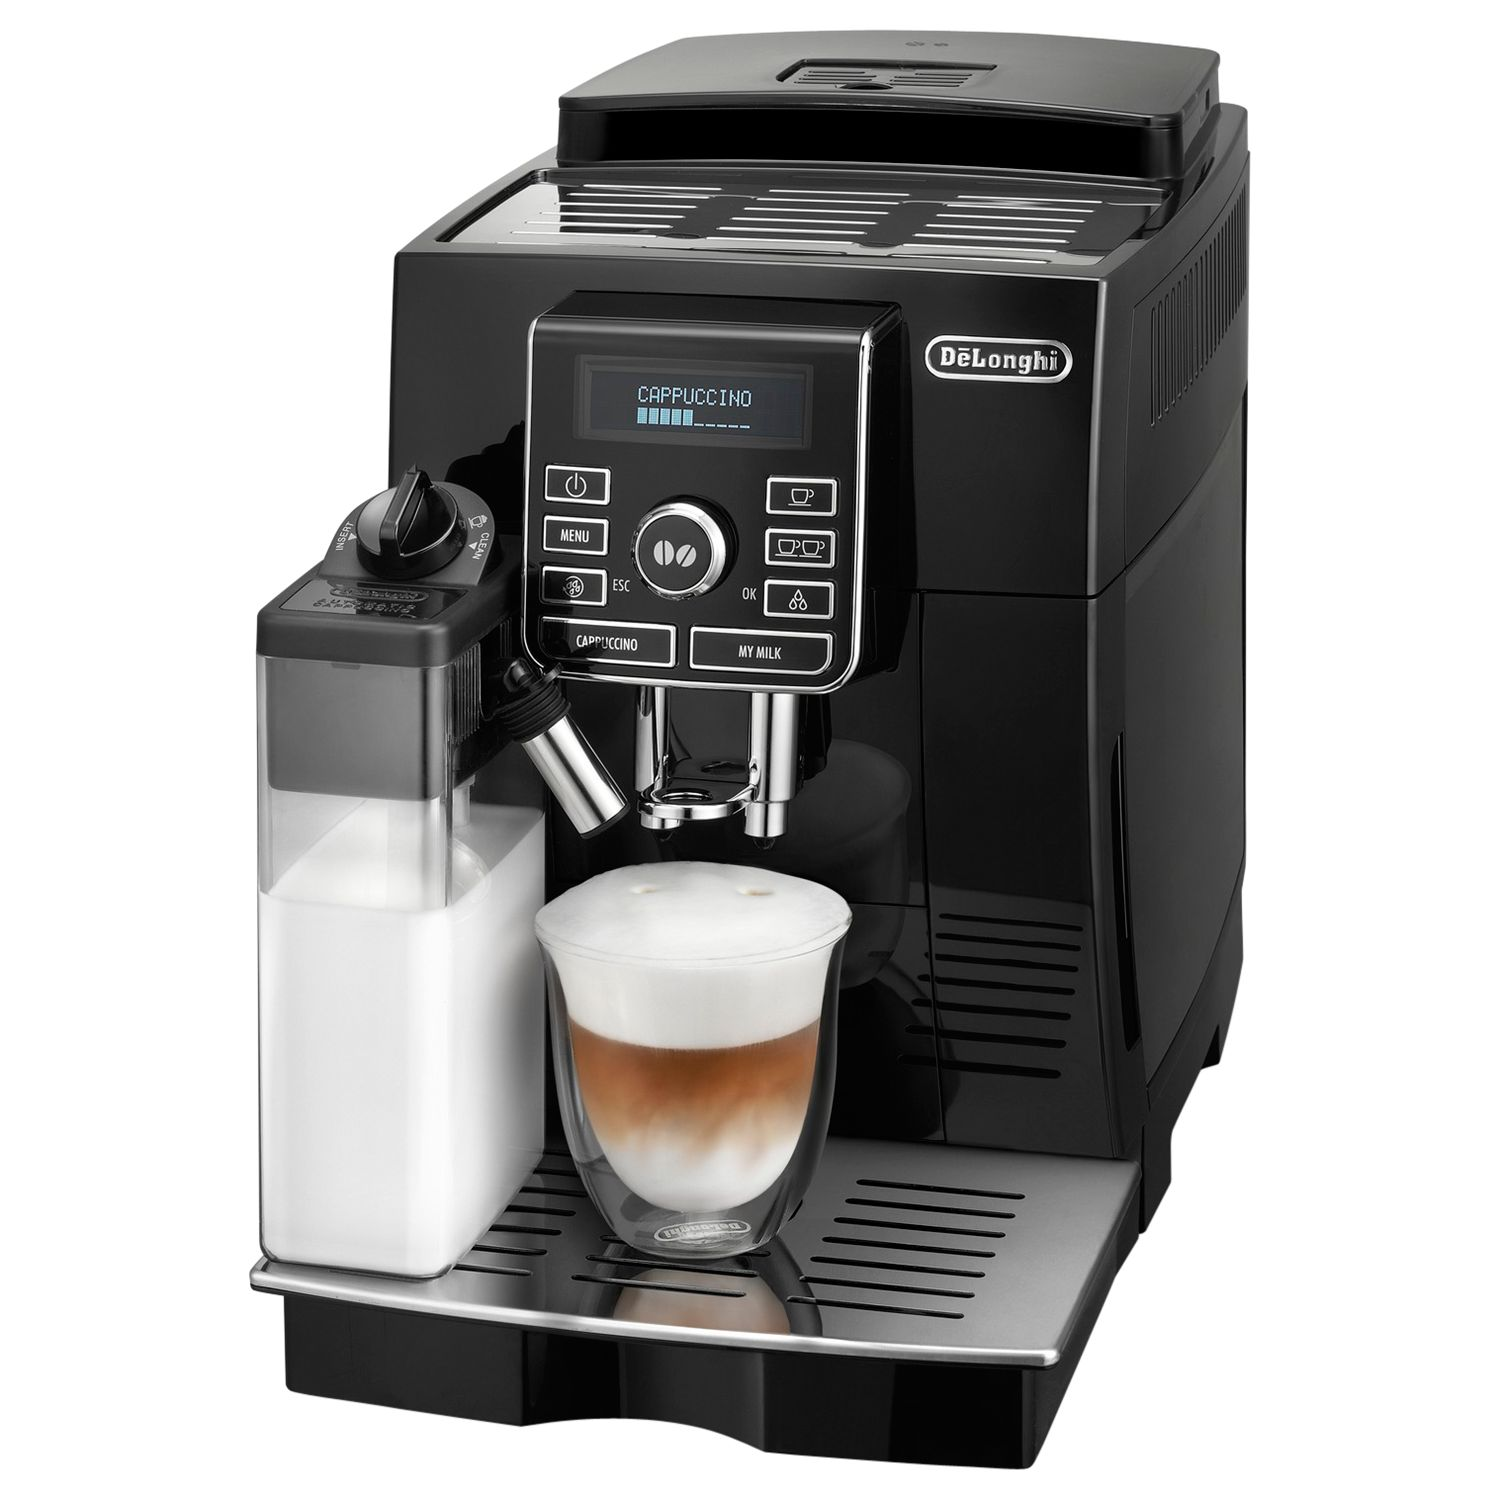 DeLonghi Magnifica Coffee Maker - Compare Prices at Foundem